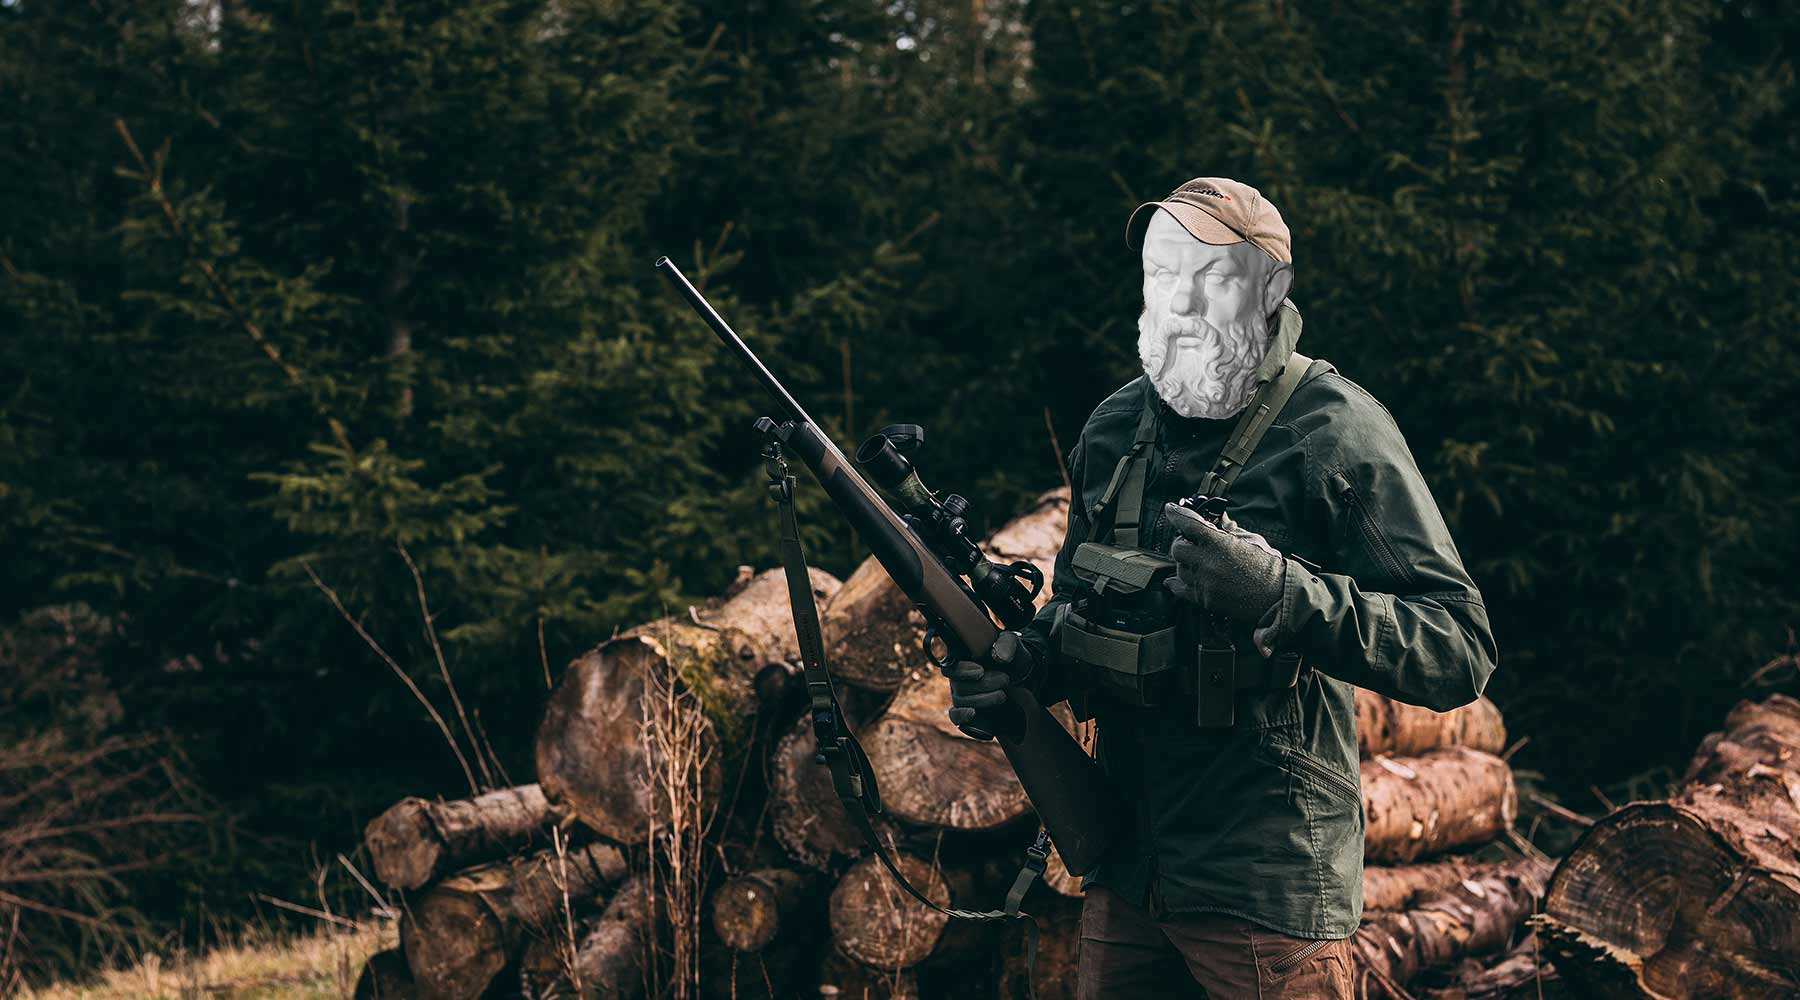 A hunting philosophy inspired by an unusual book about leadership